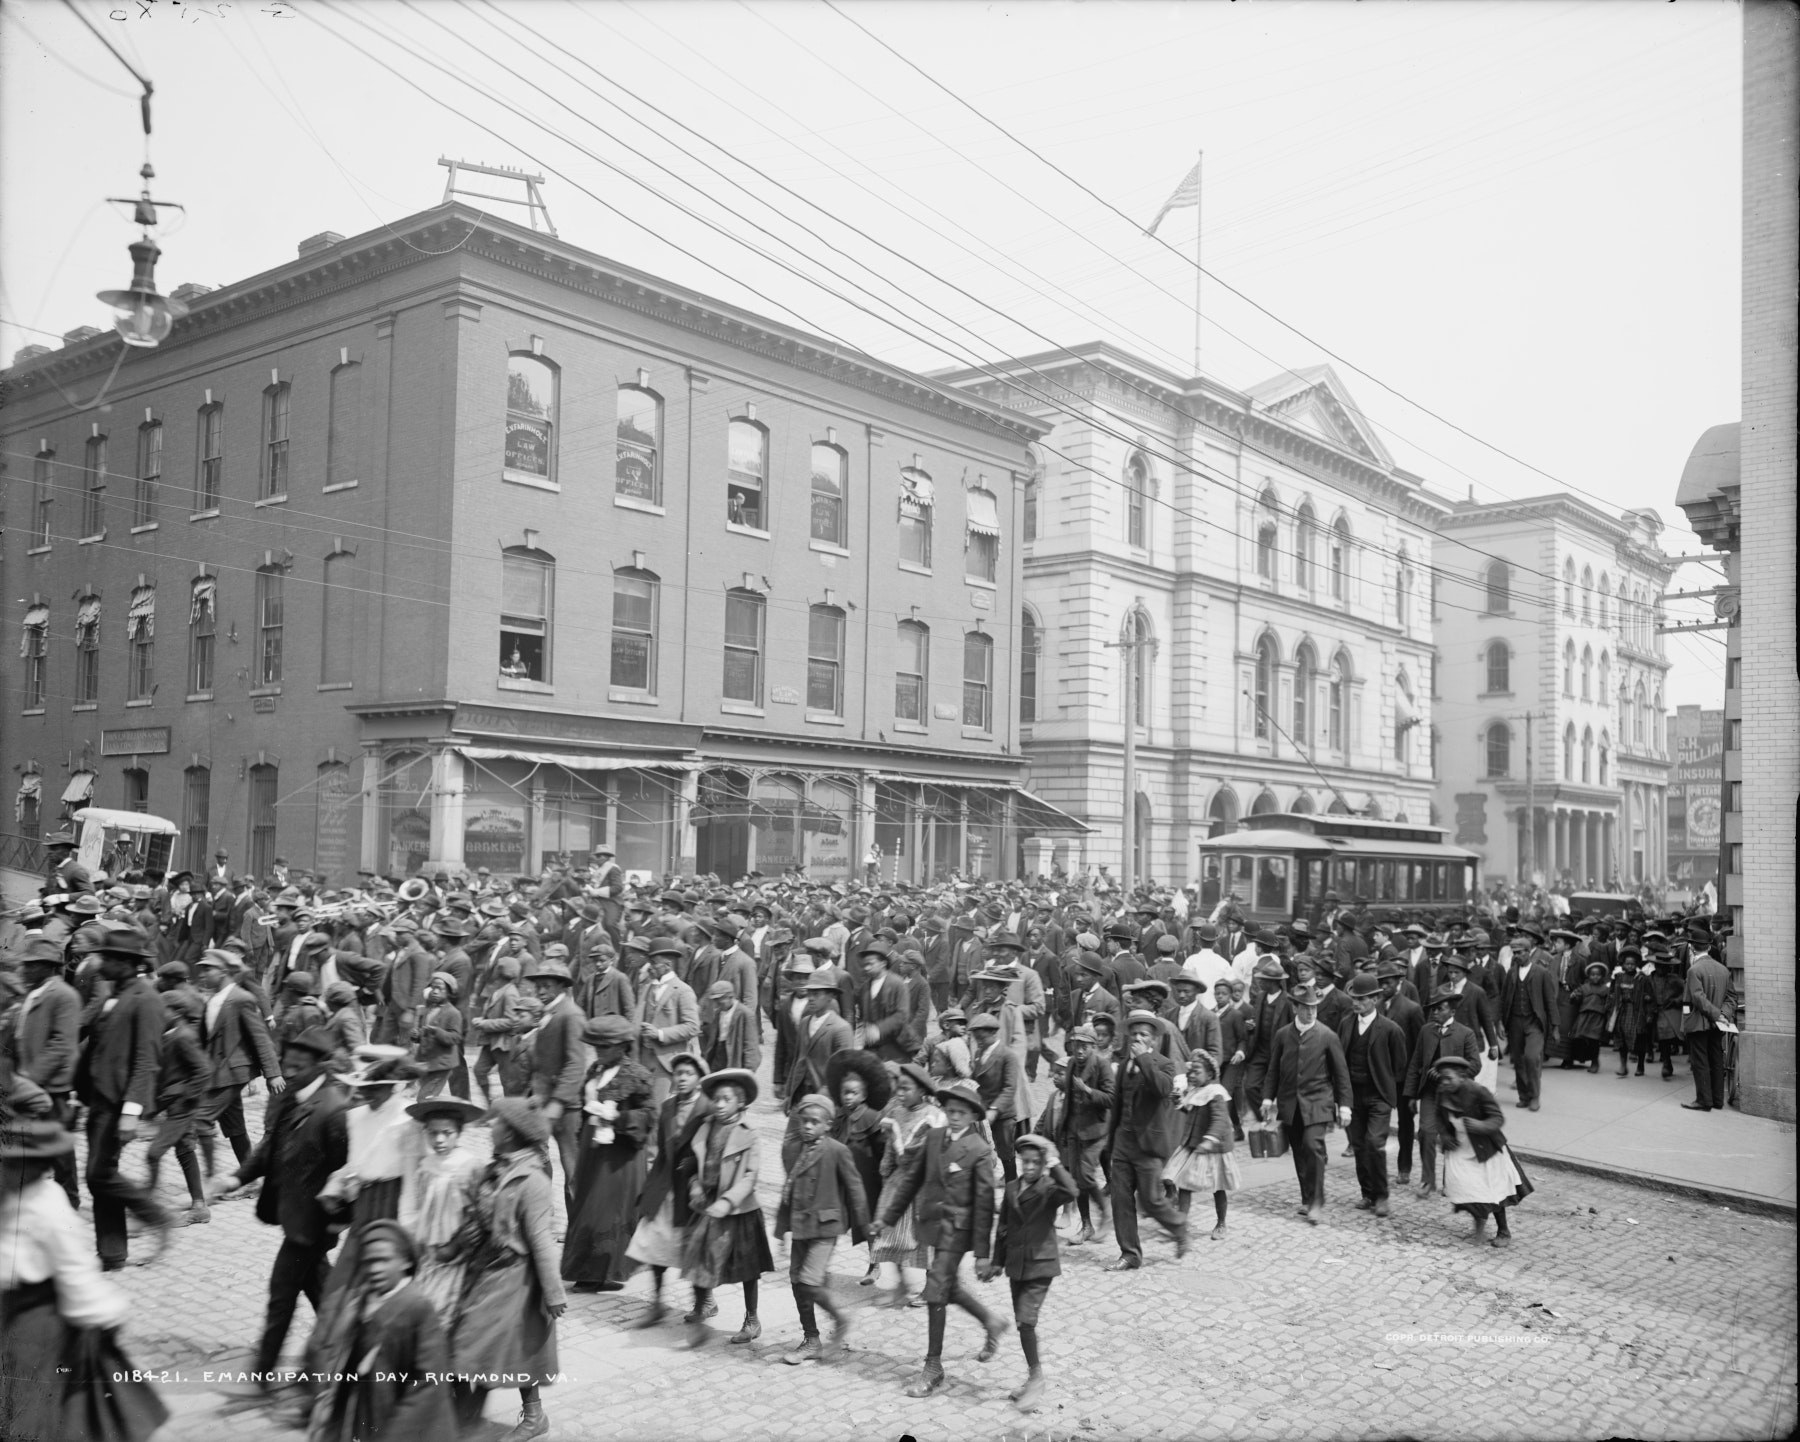 A crowd of people rushes down the street